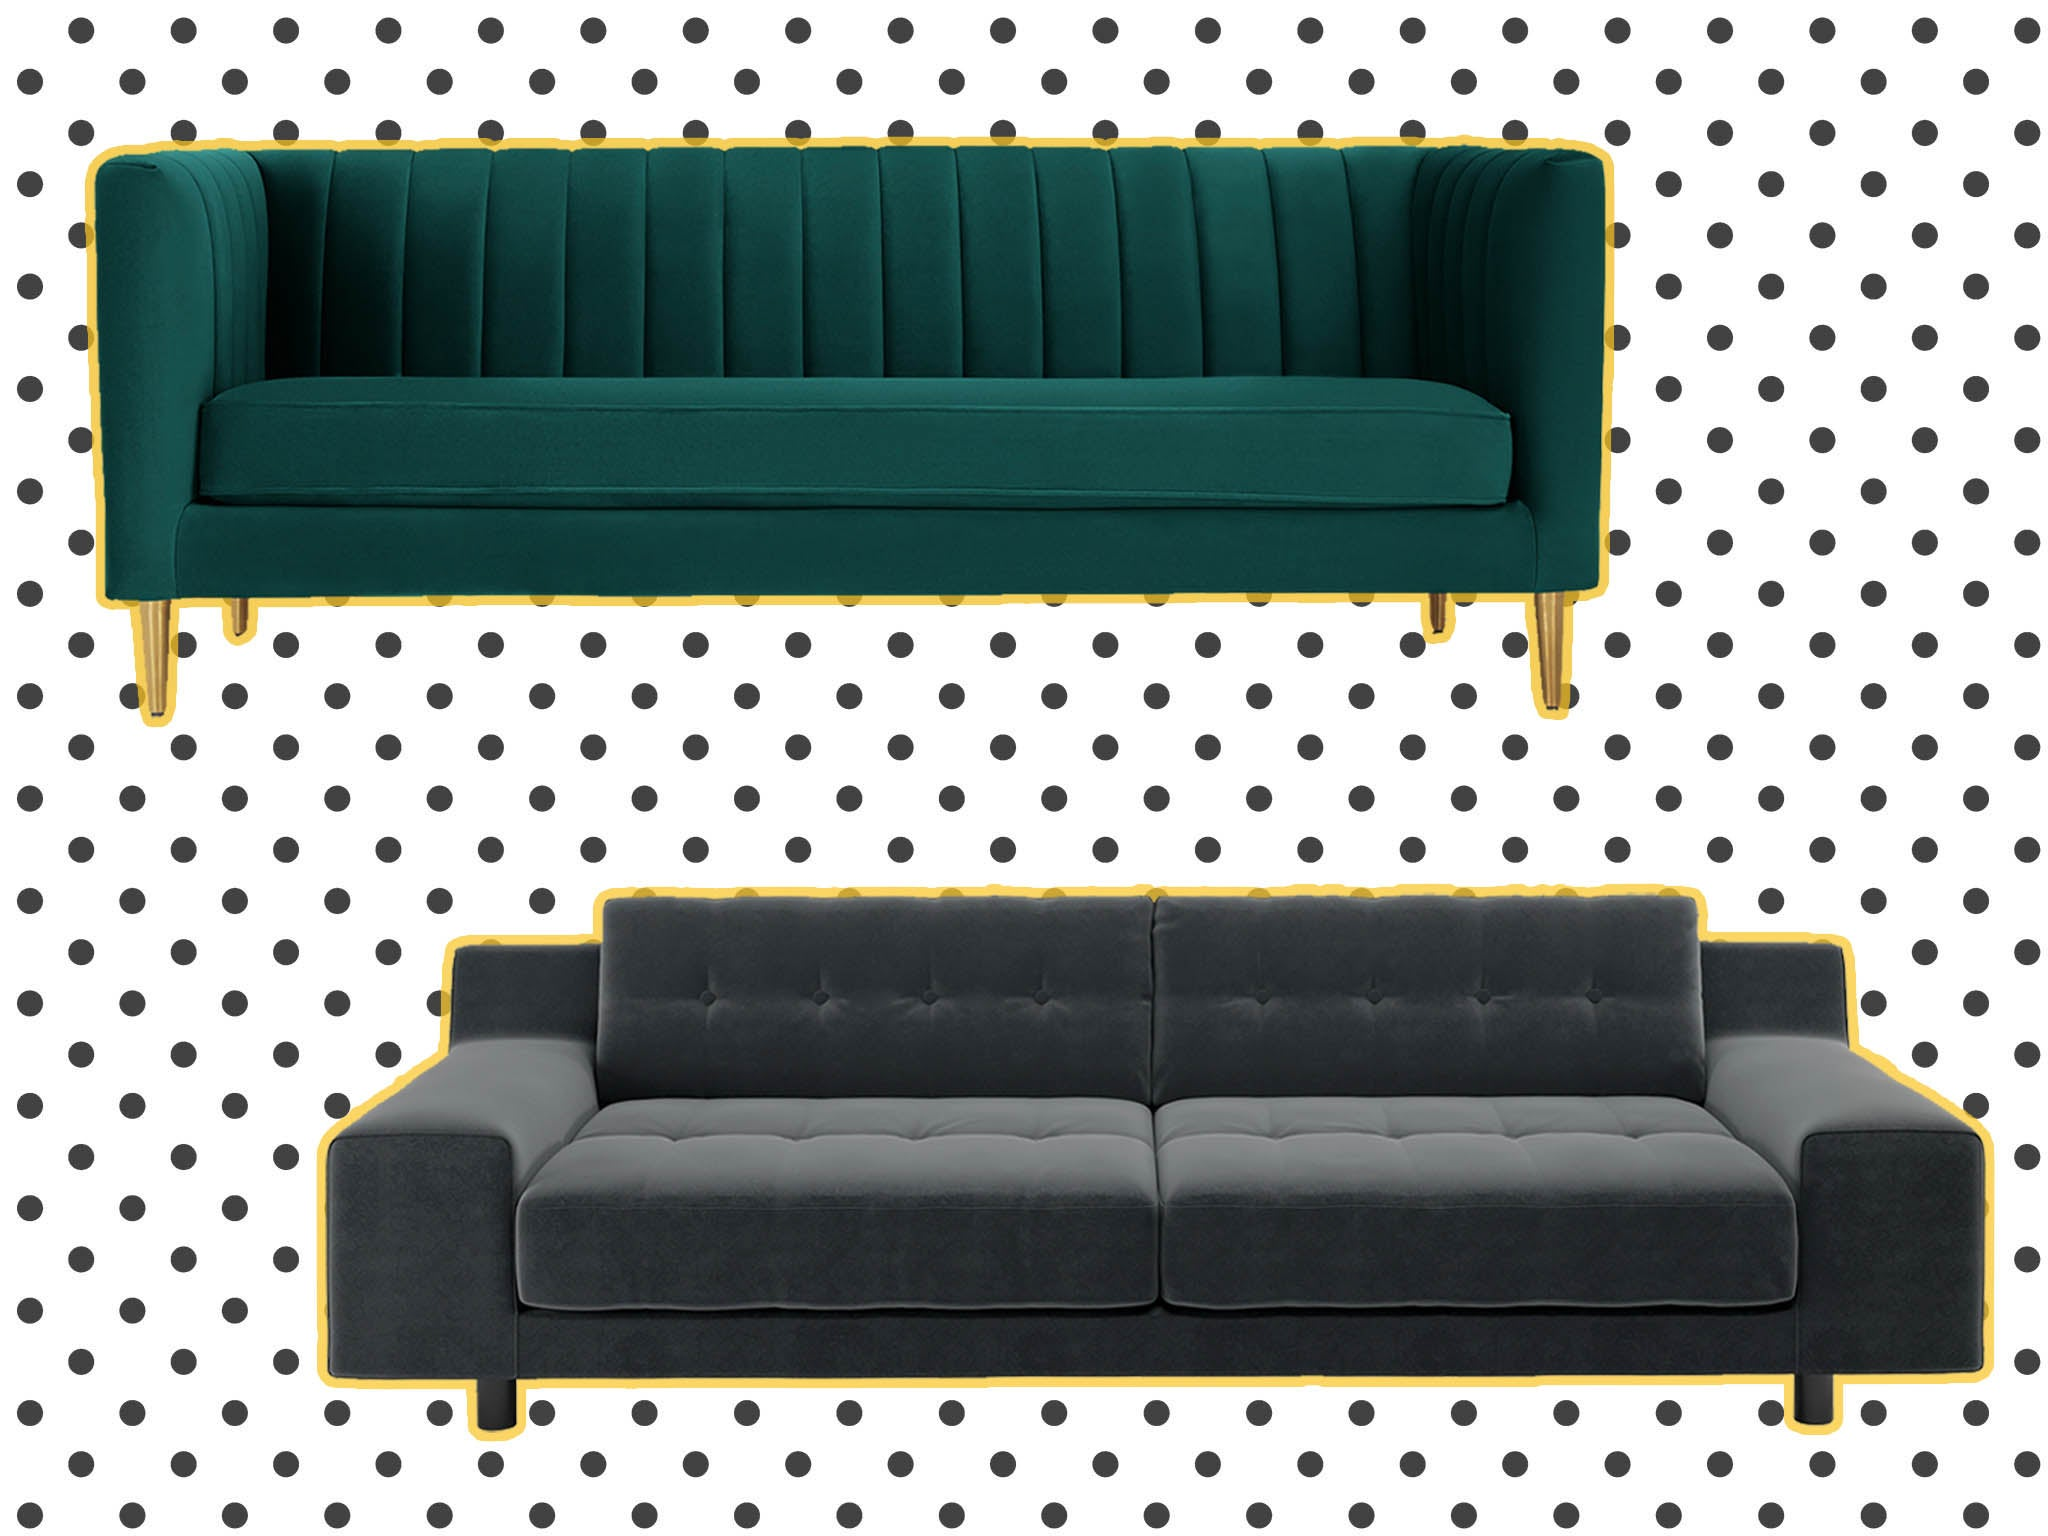 Best sofa 8: Upgrade your living room setup with stylish